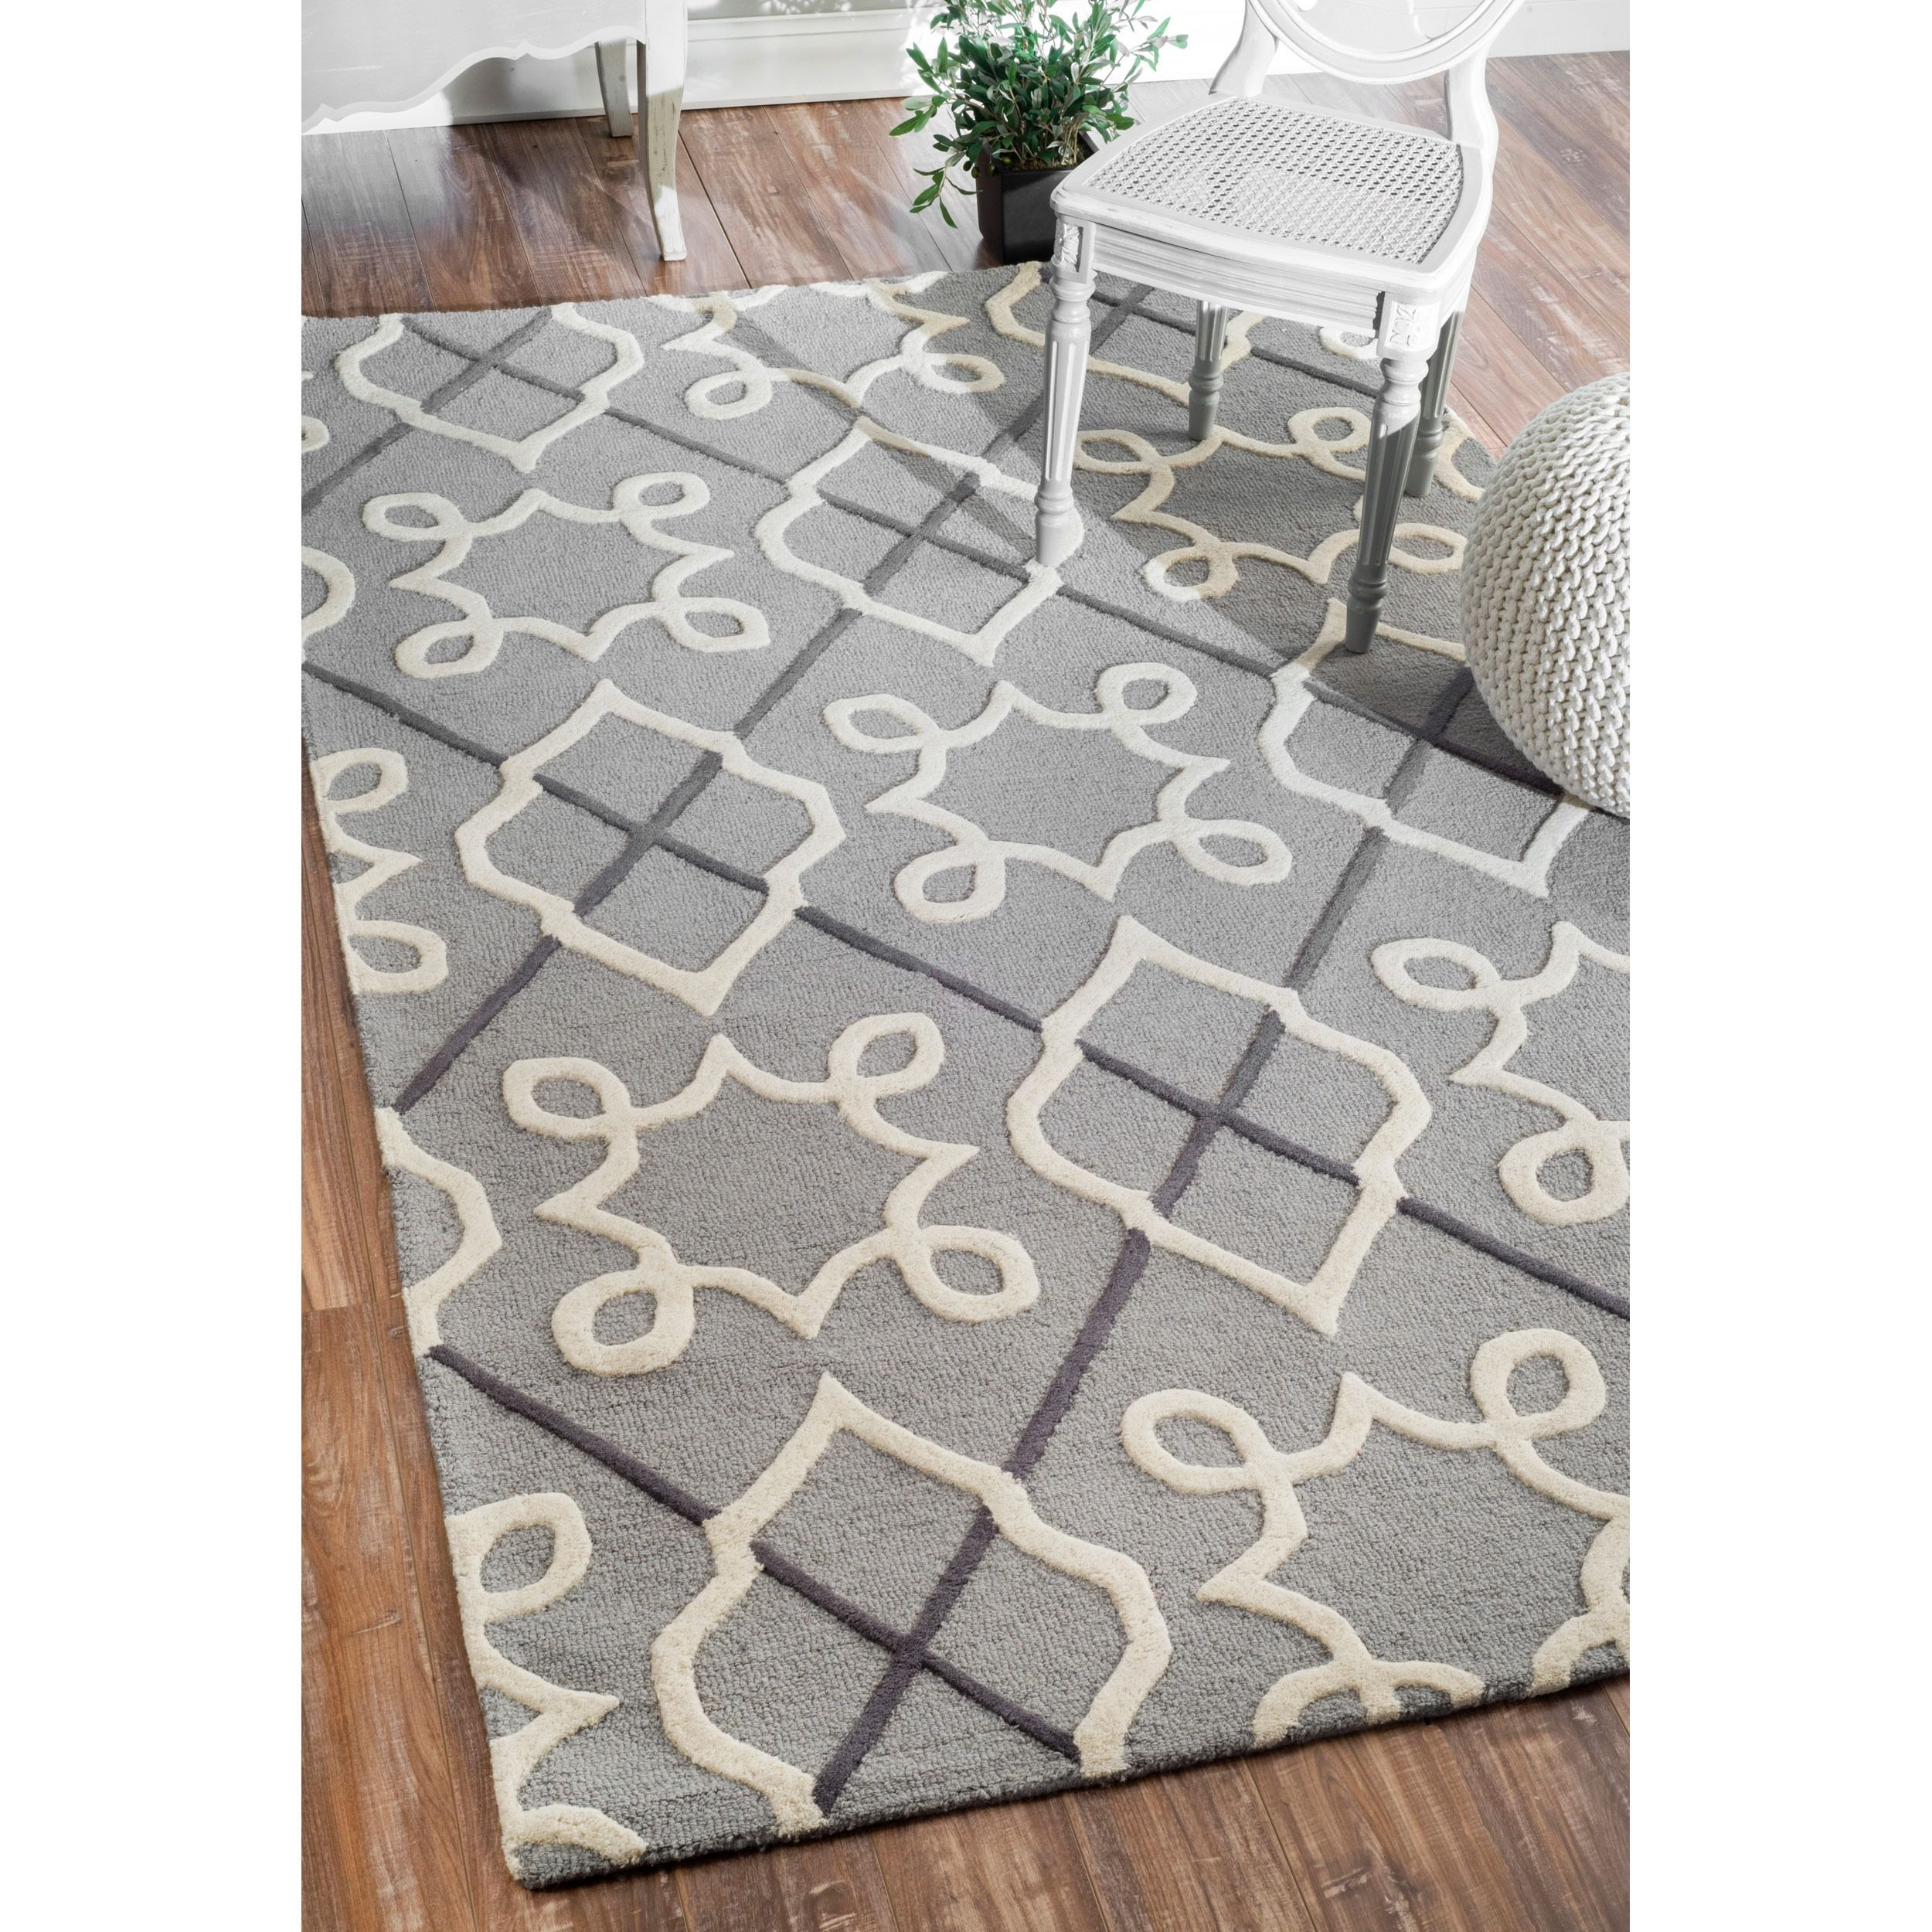 Hand Made Wool Area Rug Featuring An Elegant And Fresh